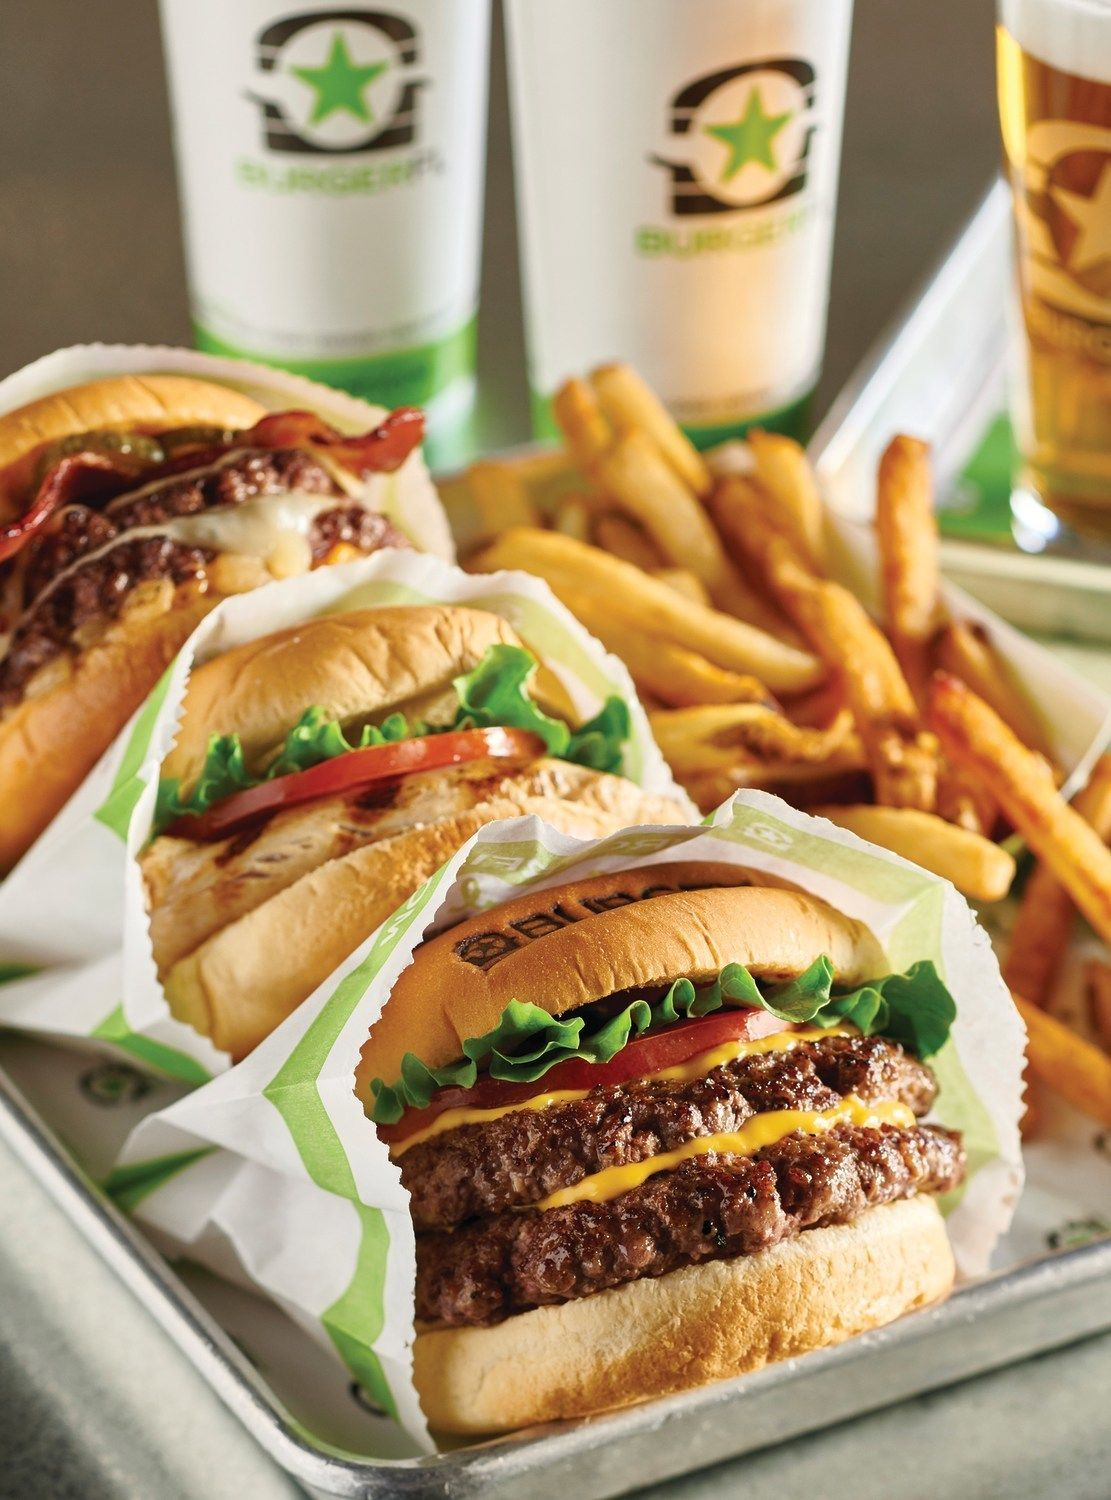 BurgerFi Expands National Footprint Overnight With REEF Partnership Bringing Better-Burgers To Millions More In 2020